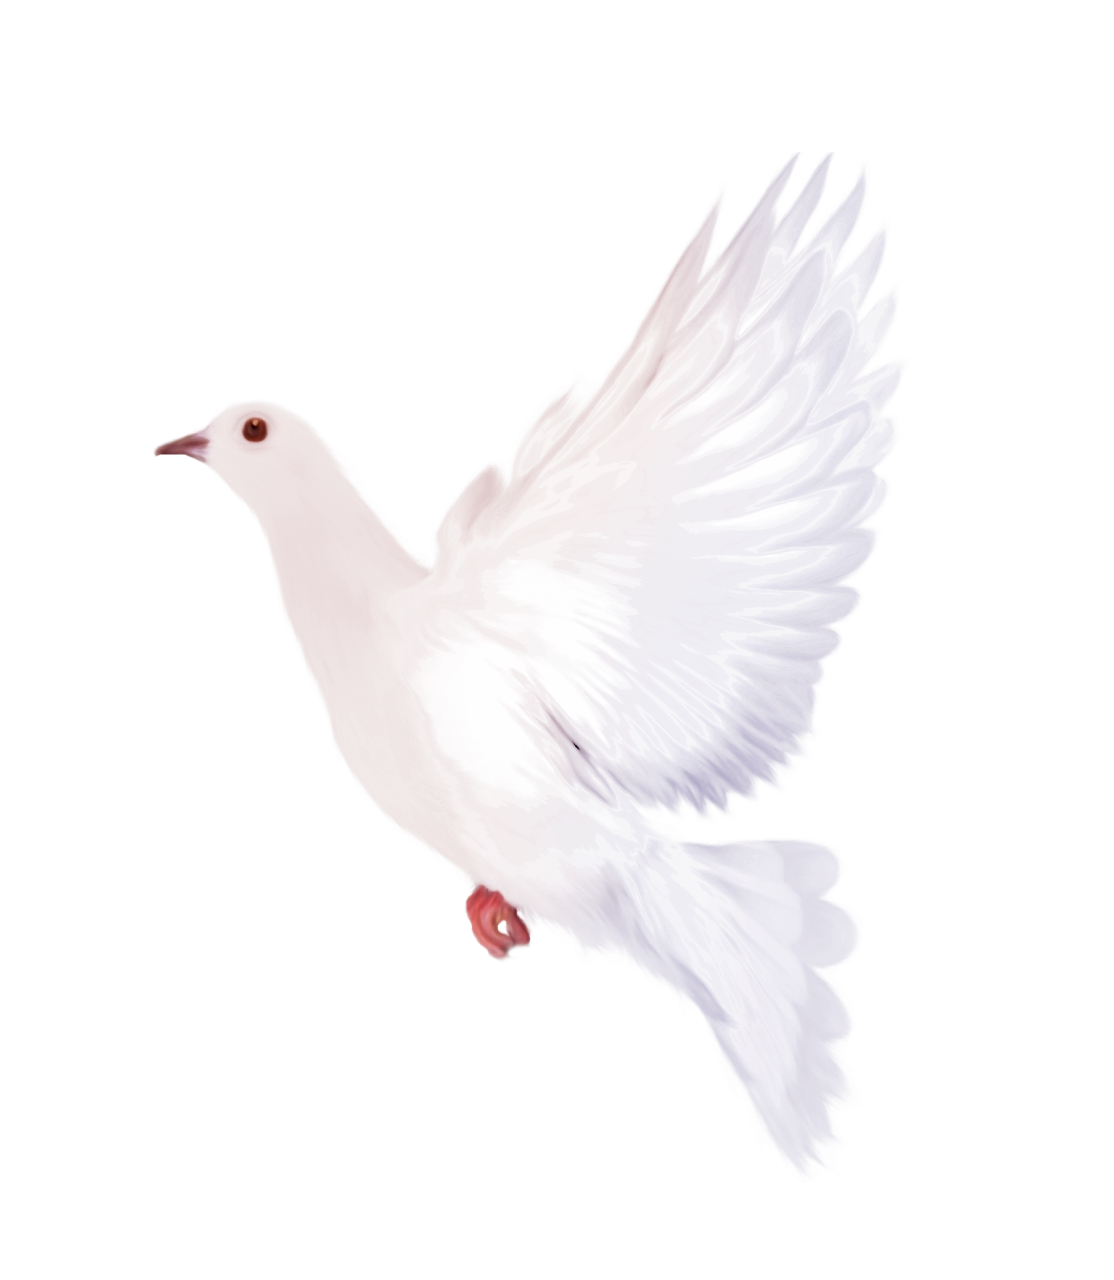 White Dove clipart #5, Download drawings